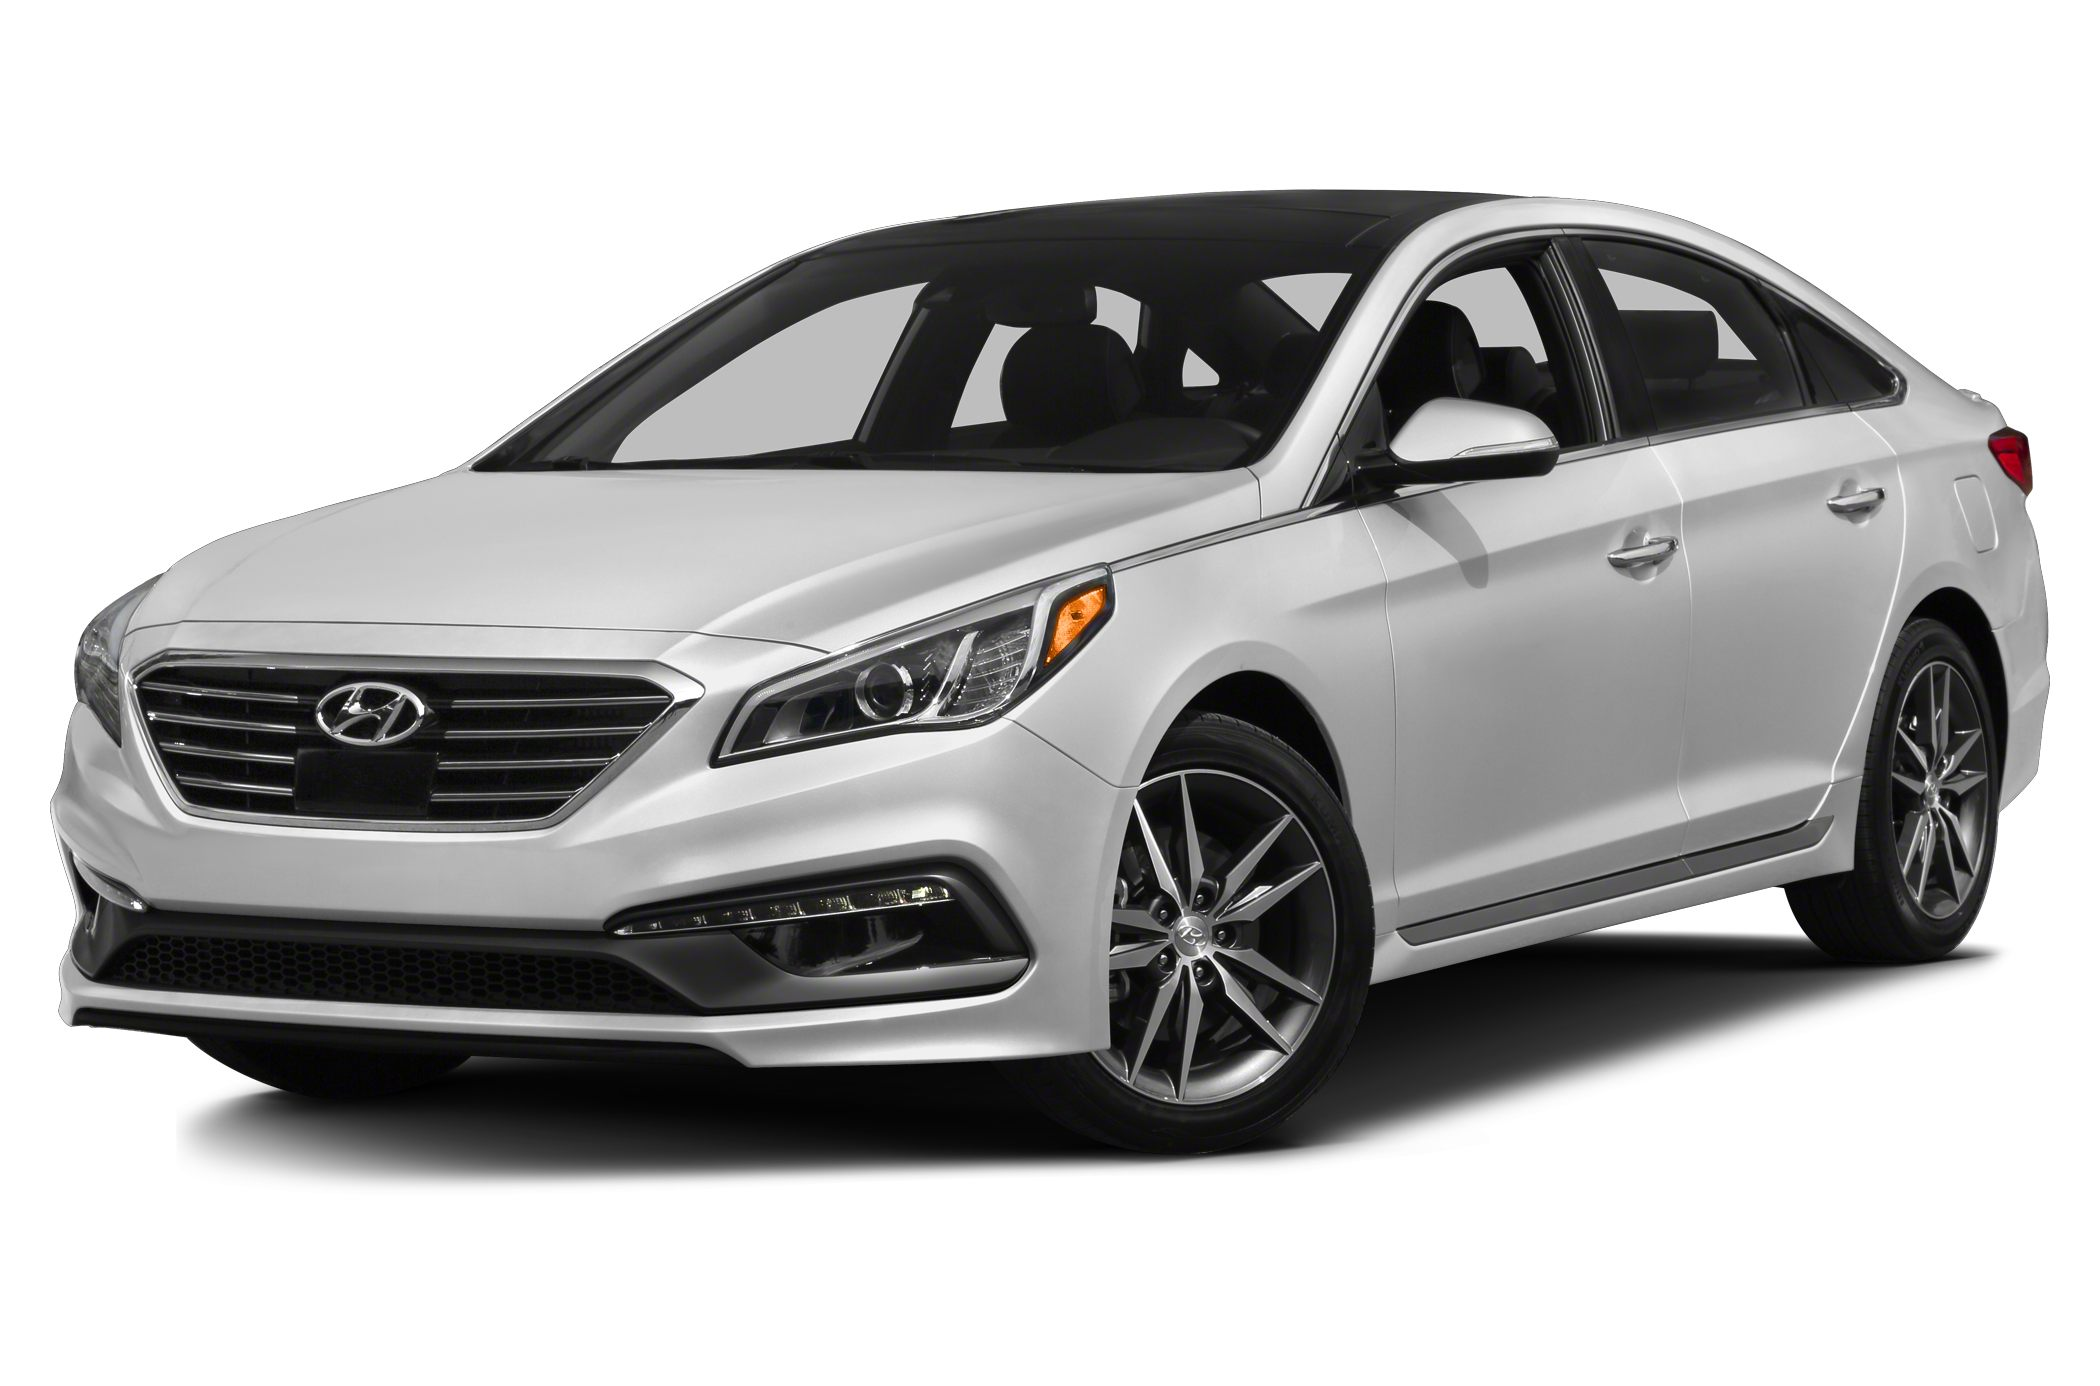 2015 Hyundai Sonata Sport Sedan for sale in Lansing for $21,460 with 2 miles.